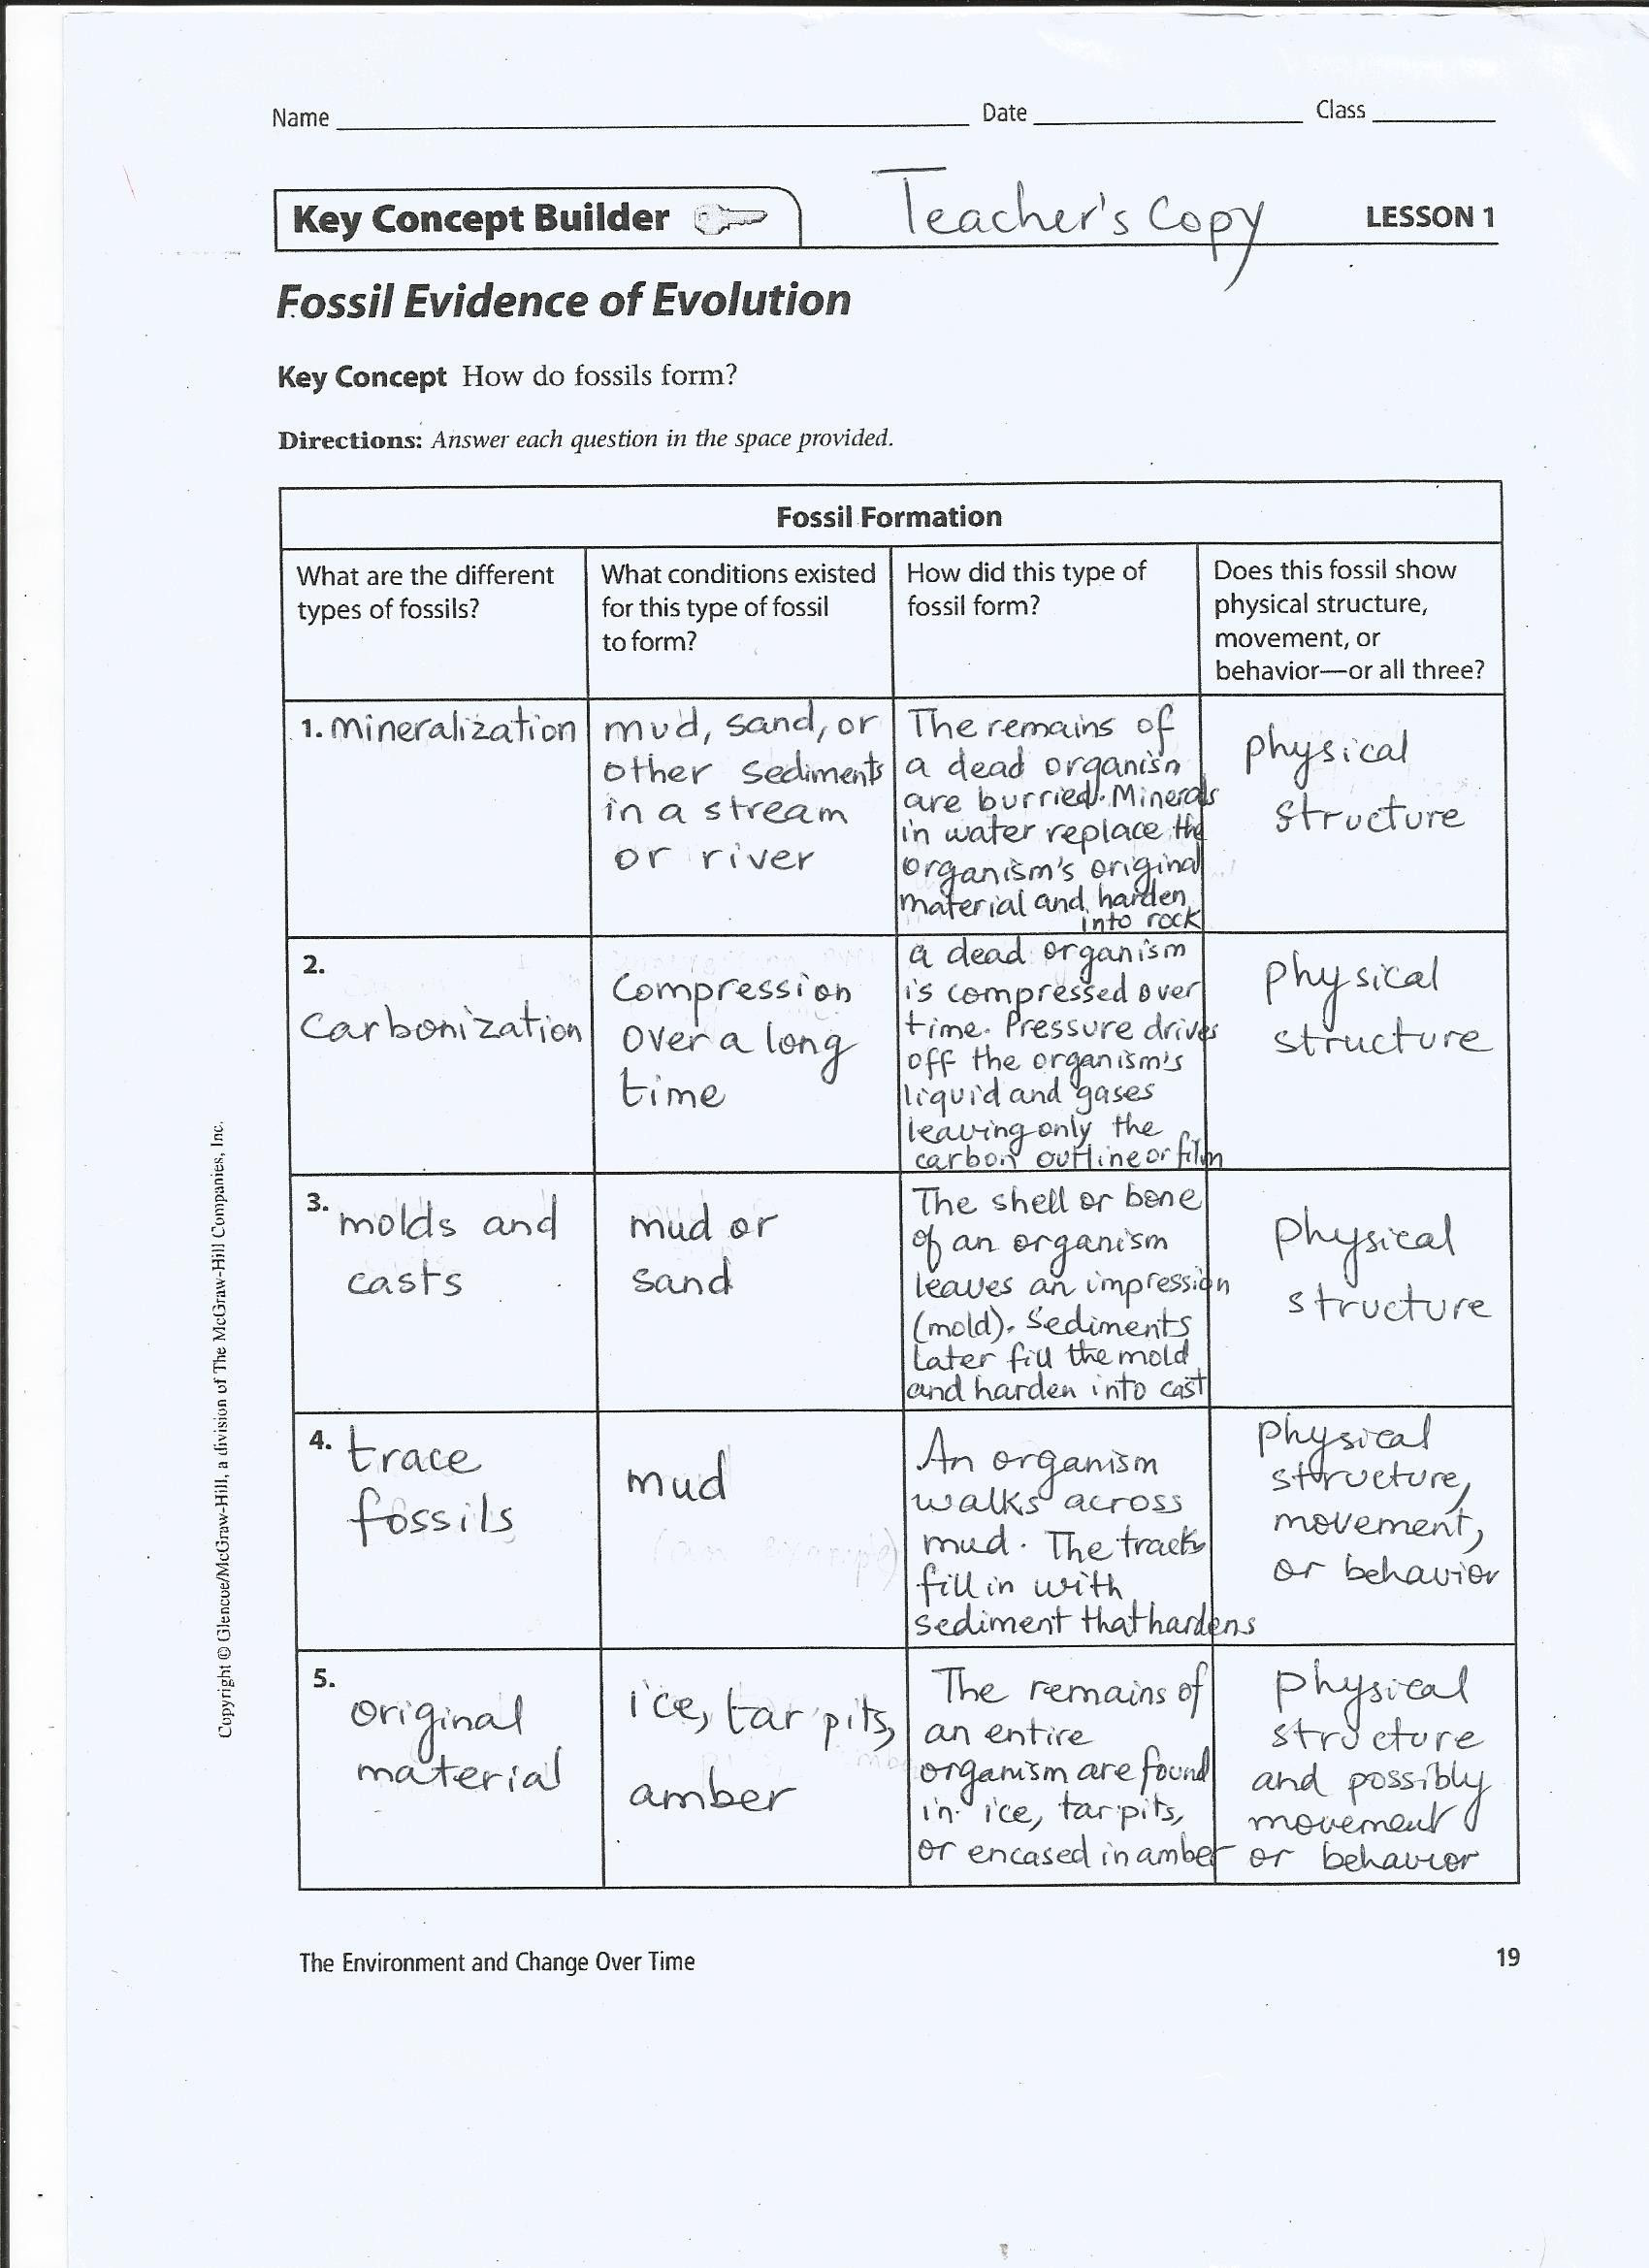 30 Evidence for Evolution Worksheet Answers | Education ...